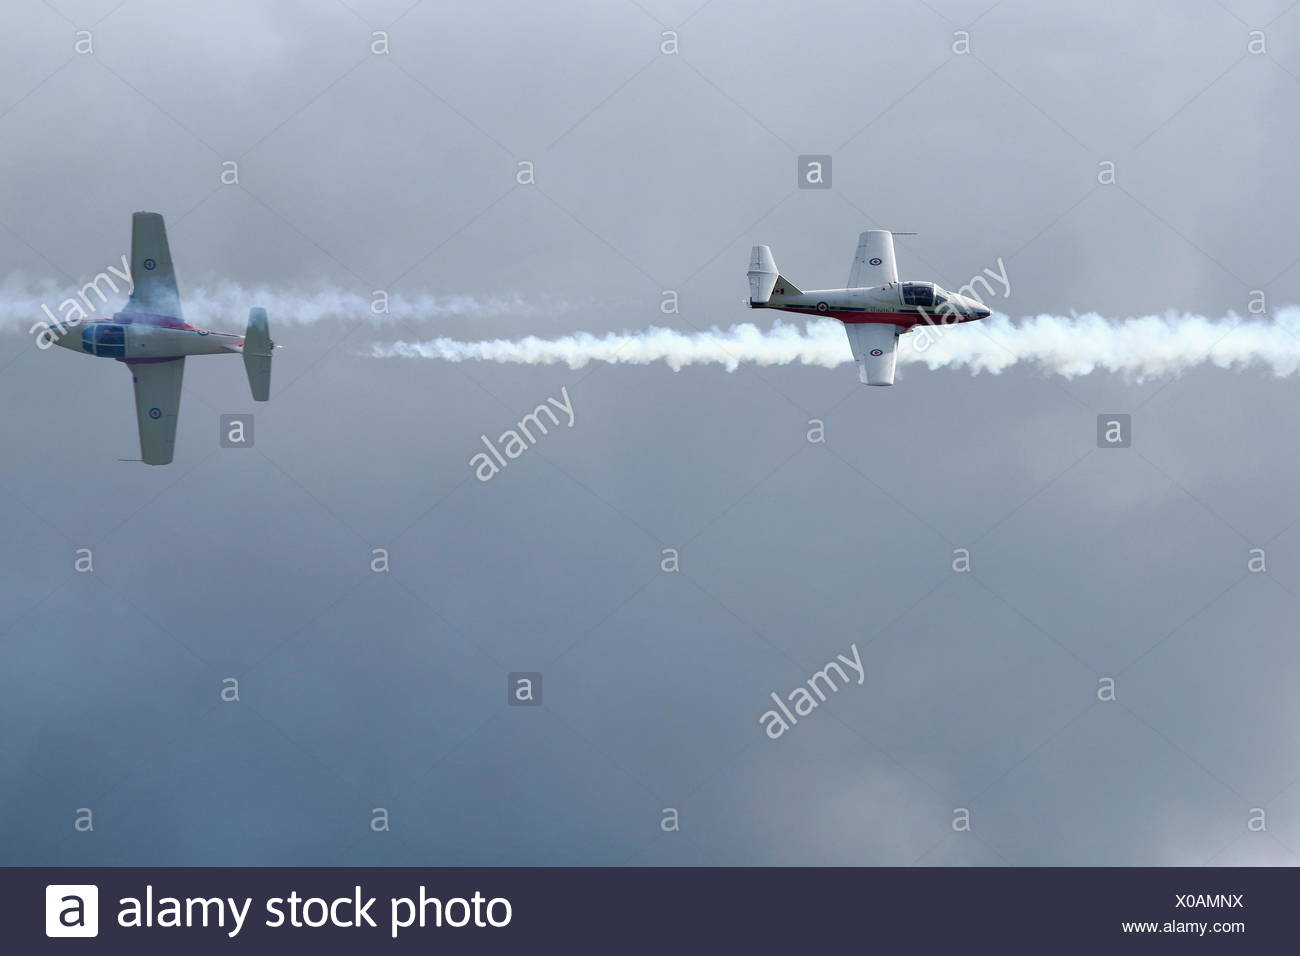 The Canadian Forces Snowbirds aerobatic team, air show, Bromont, Eastern Townships, Quebec Province, Canada, North Americ - Stock Image